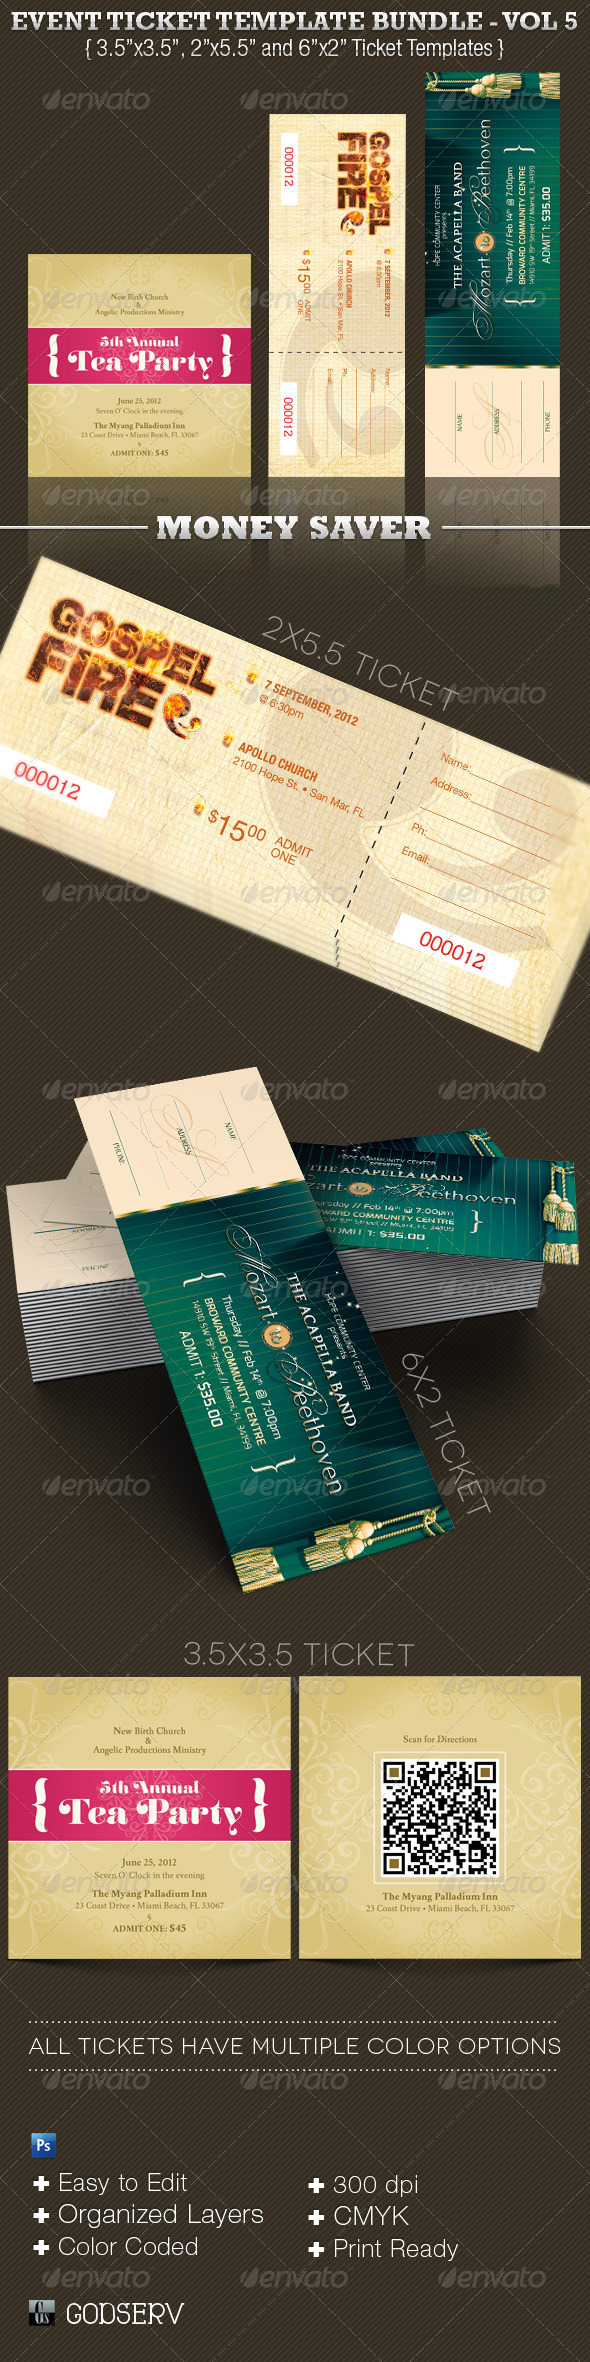 GraphicRiver Event Ticket Template Bundle Vol 5 3959429